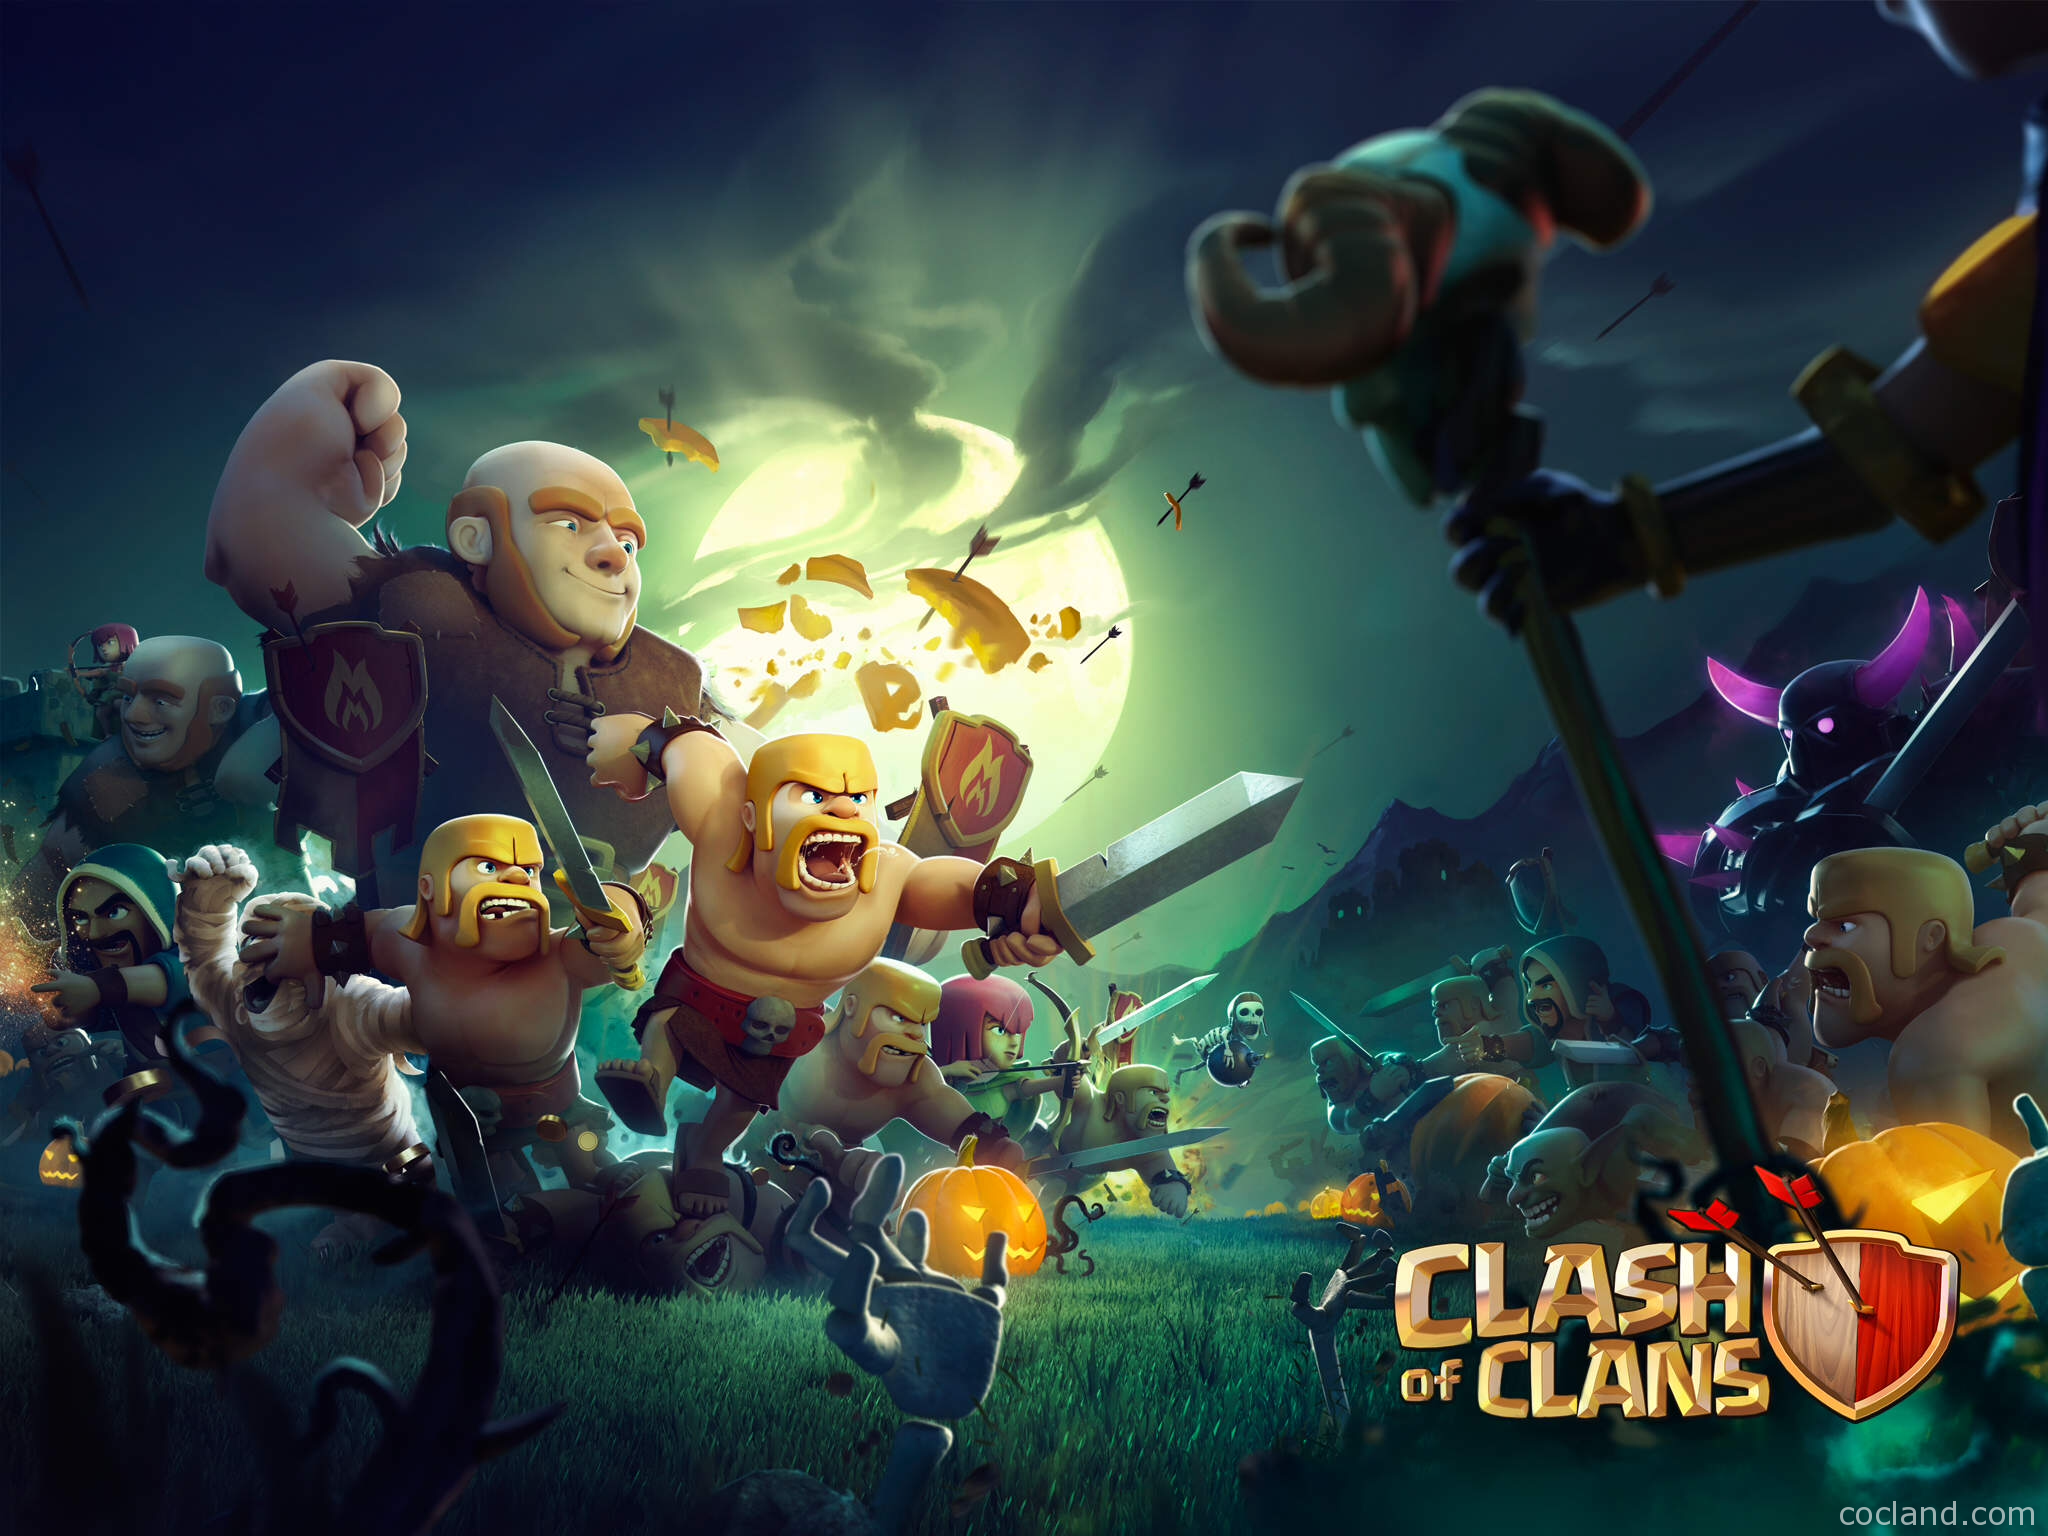 Clash of Clans HD Wallpapers Clash of Clans Land 2048x1536